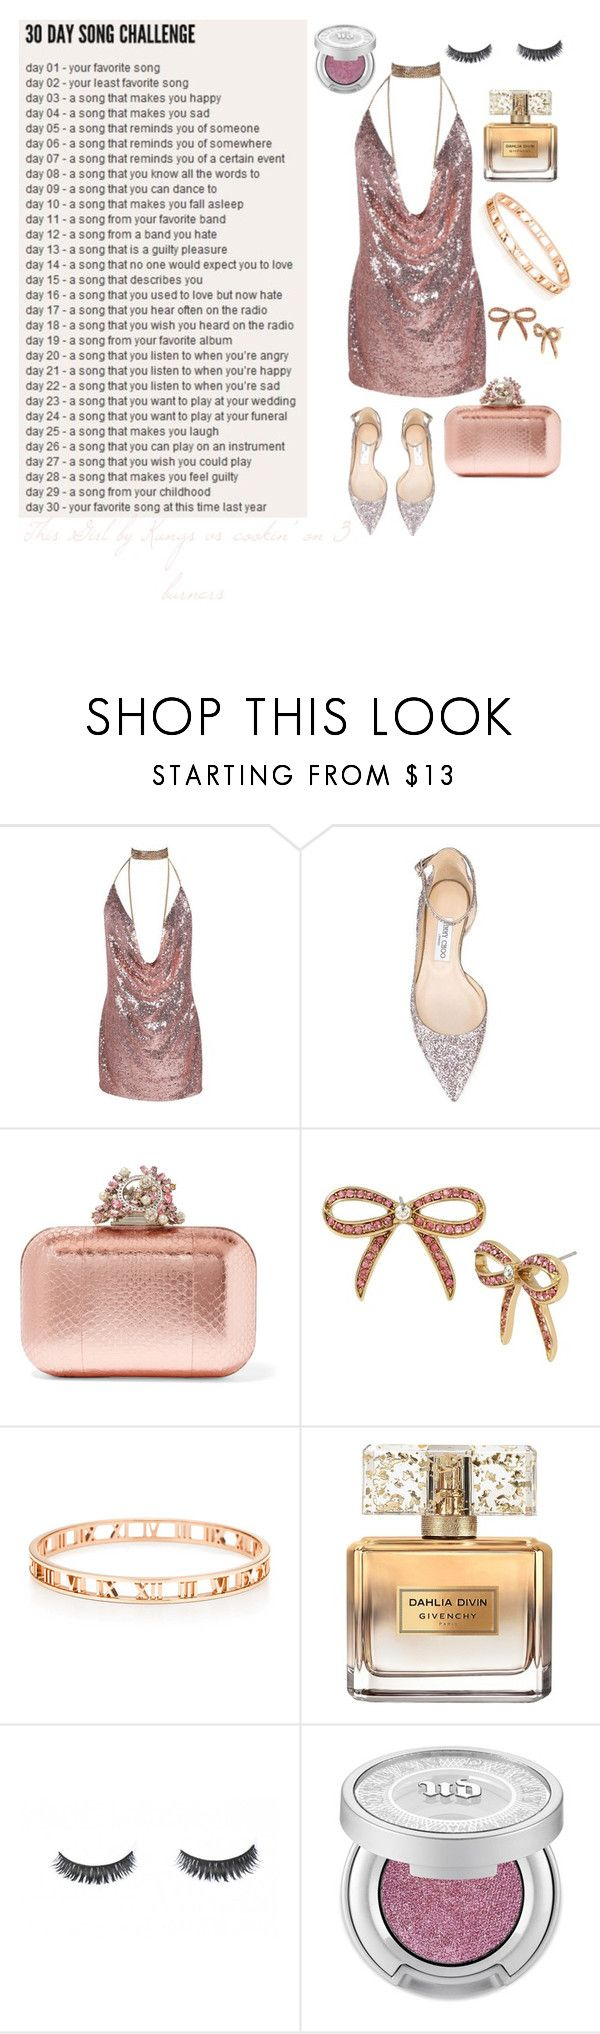 """""""Day 9 This Girl by Kungs vs. Cookin' on 3 Burners"""" by grace-buerklin ❤ liked on Polyvore featuring Jimmy Choo, Betsey Johnson, Givenchy, Luxie, Urban Decay and 30daysongchallenge"""